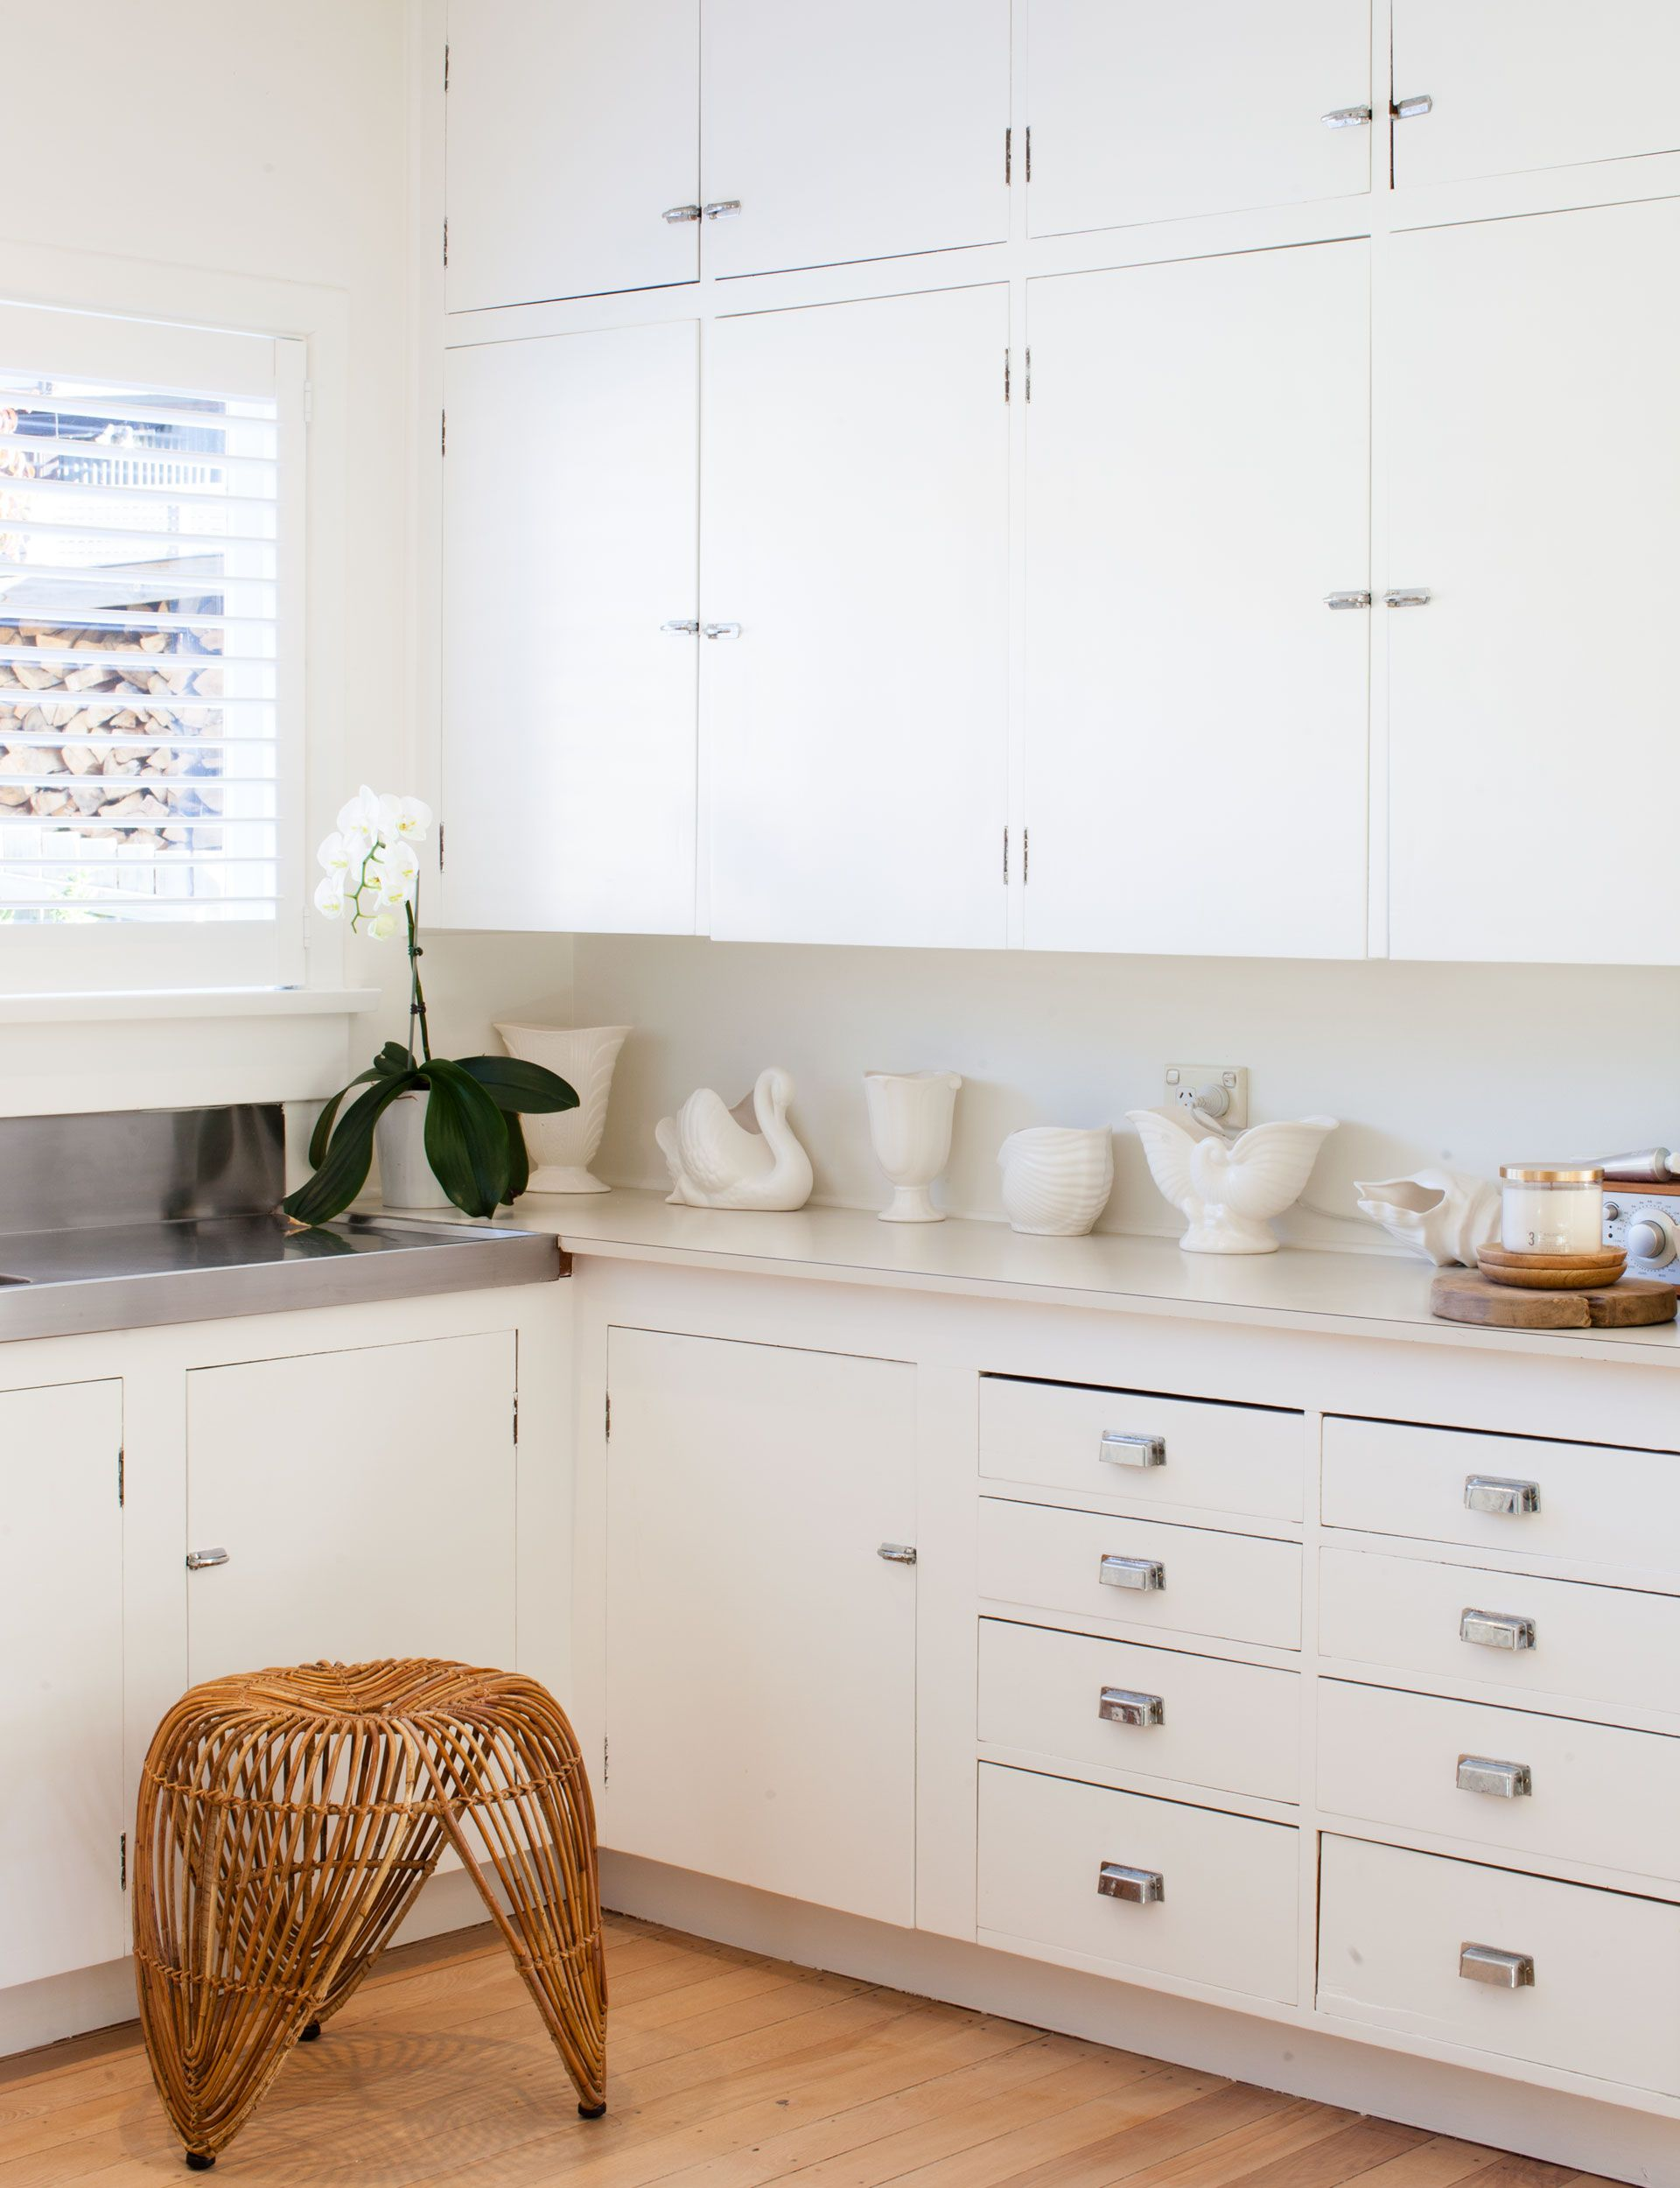 Arrowtown cottage gets a dreamy makeover with white and natural accents